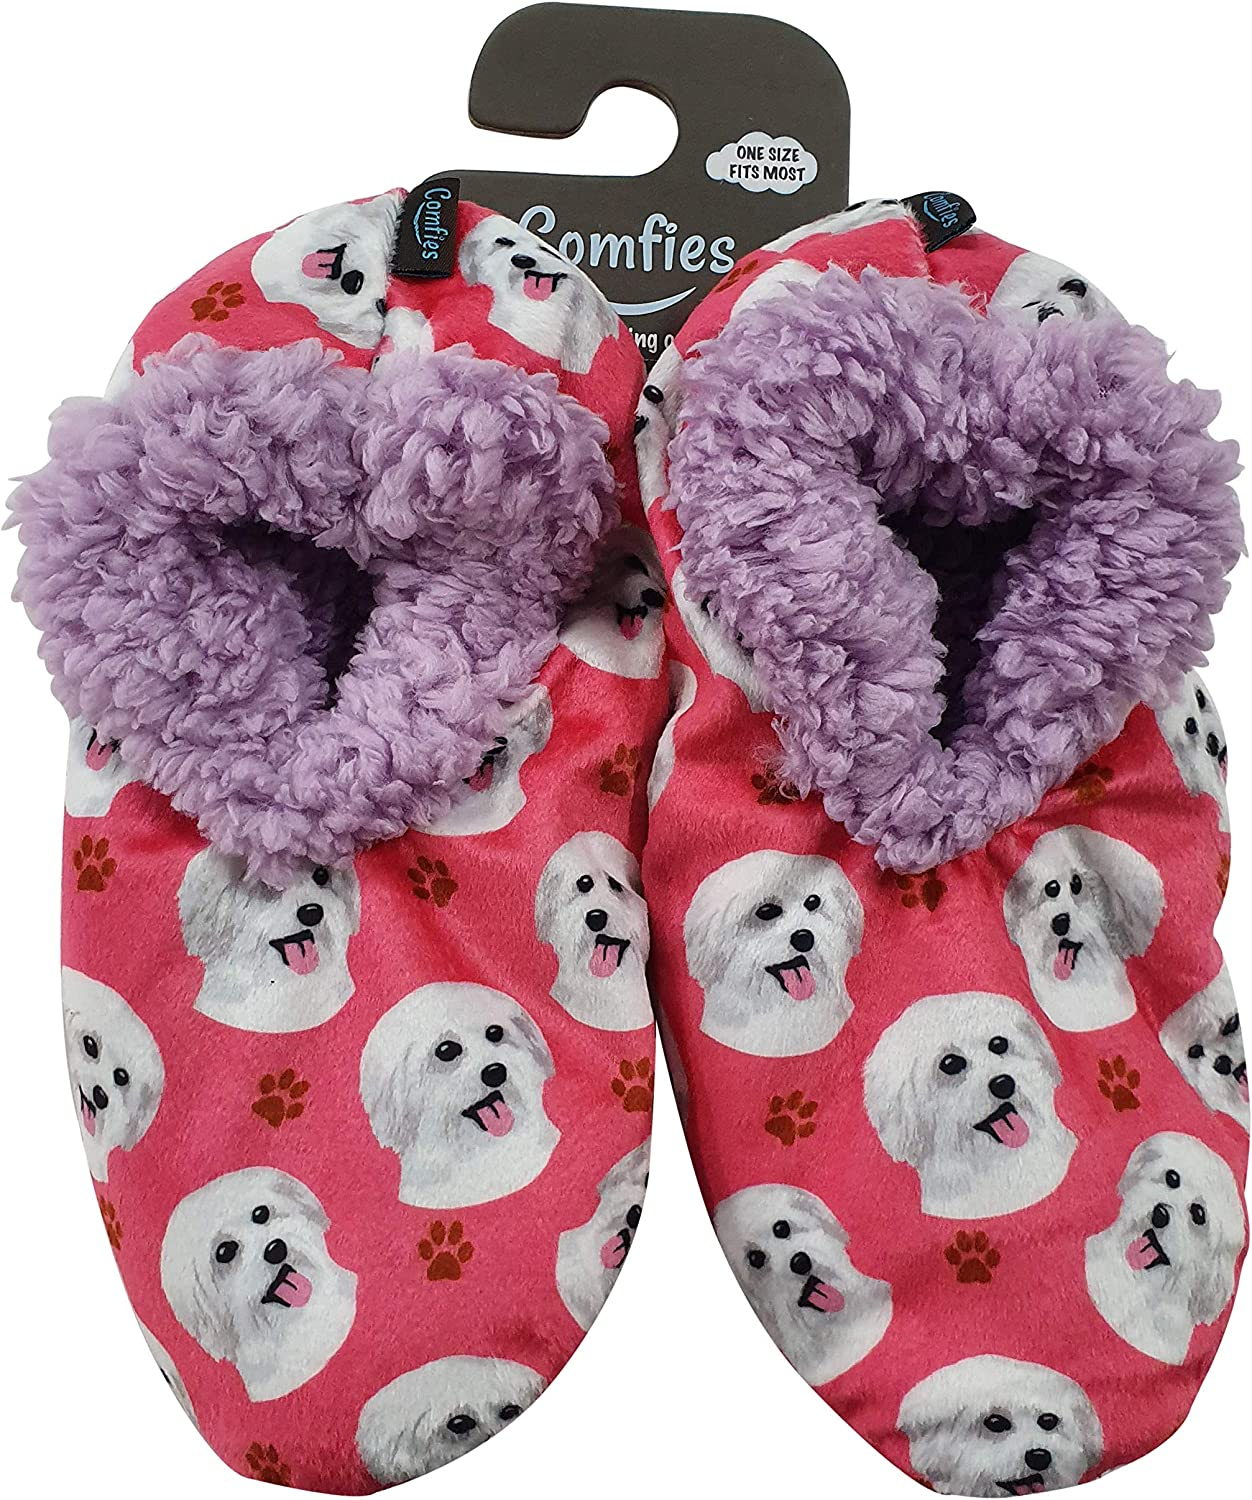 Maltese Super Soft Women's Slippers - One Size Fits Most - Cozy House Slippers - Non Skid Bottom - perfect for Maltese gifts